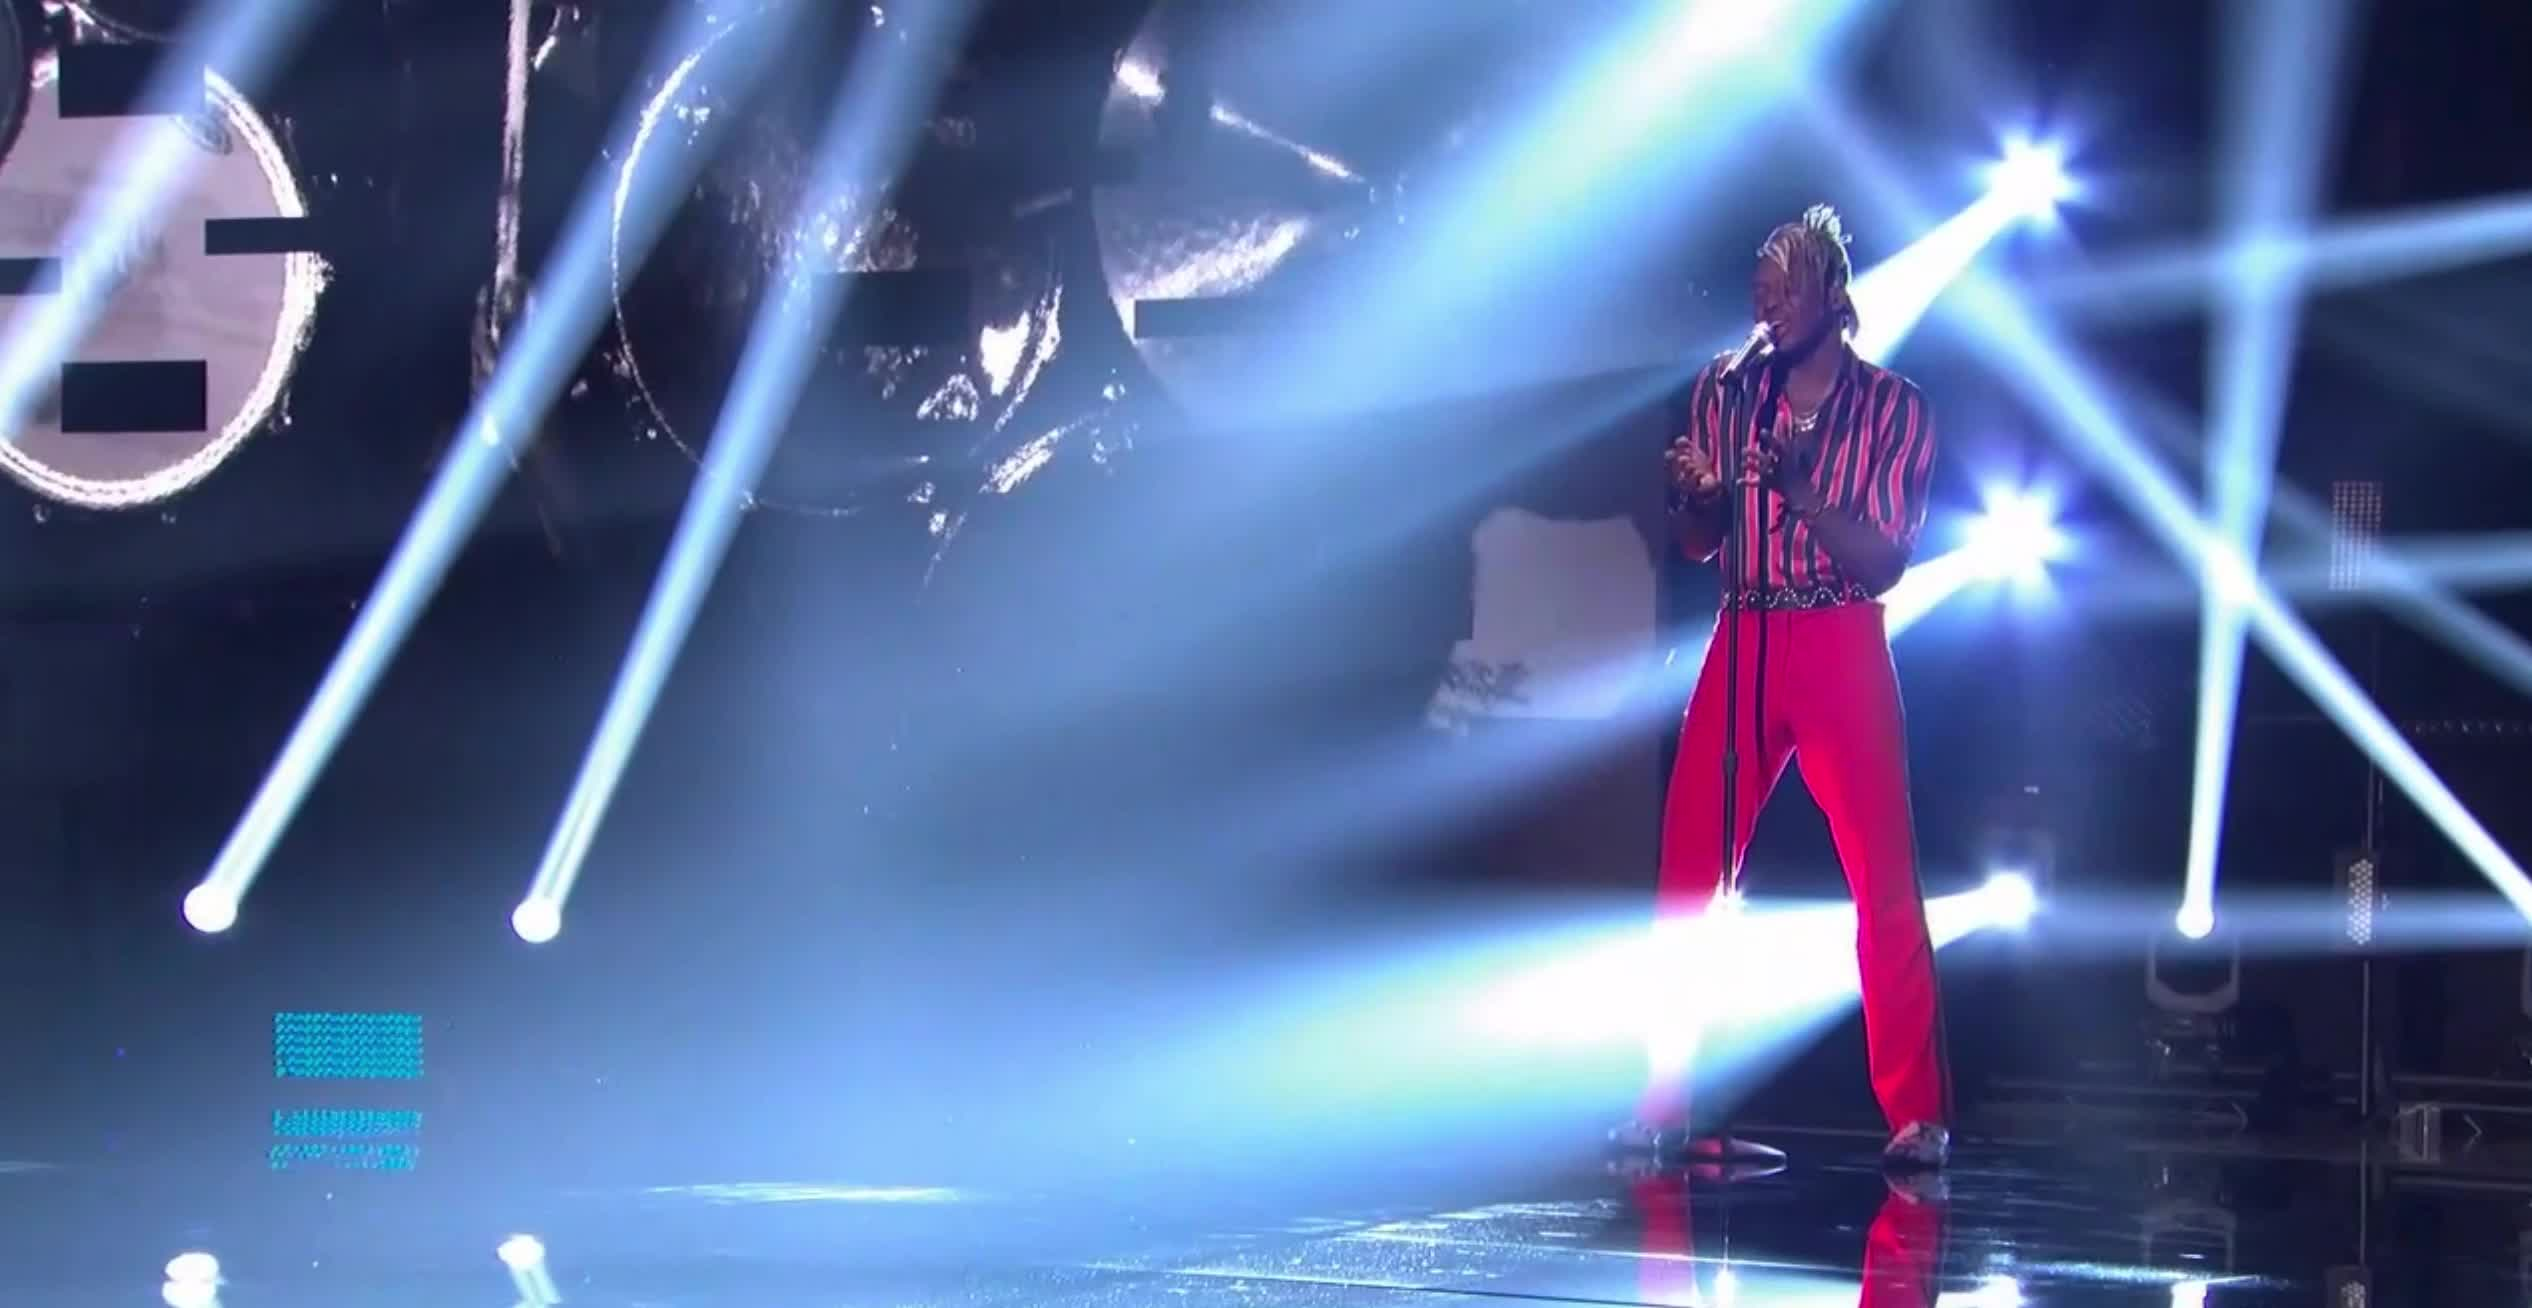 american idol, american idol season 17, americanidol, katy perry, lionel richie, luke bryan, ryan seacrest, season 17, singing, uche, American Idol Uche Starts His Performance GIFs